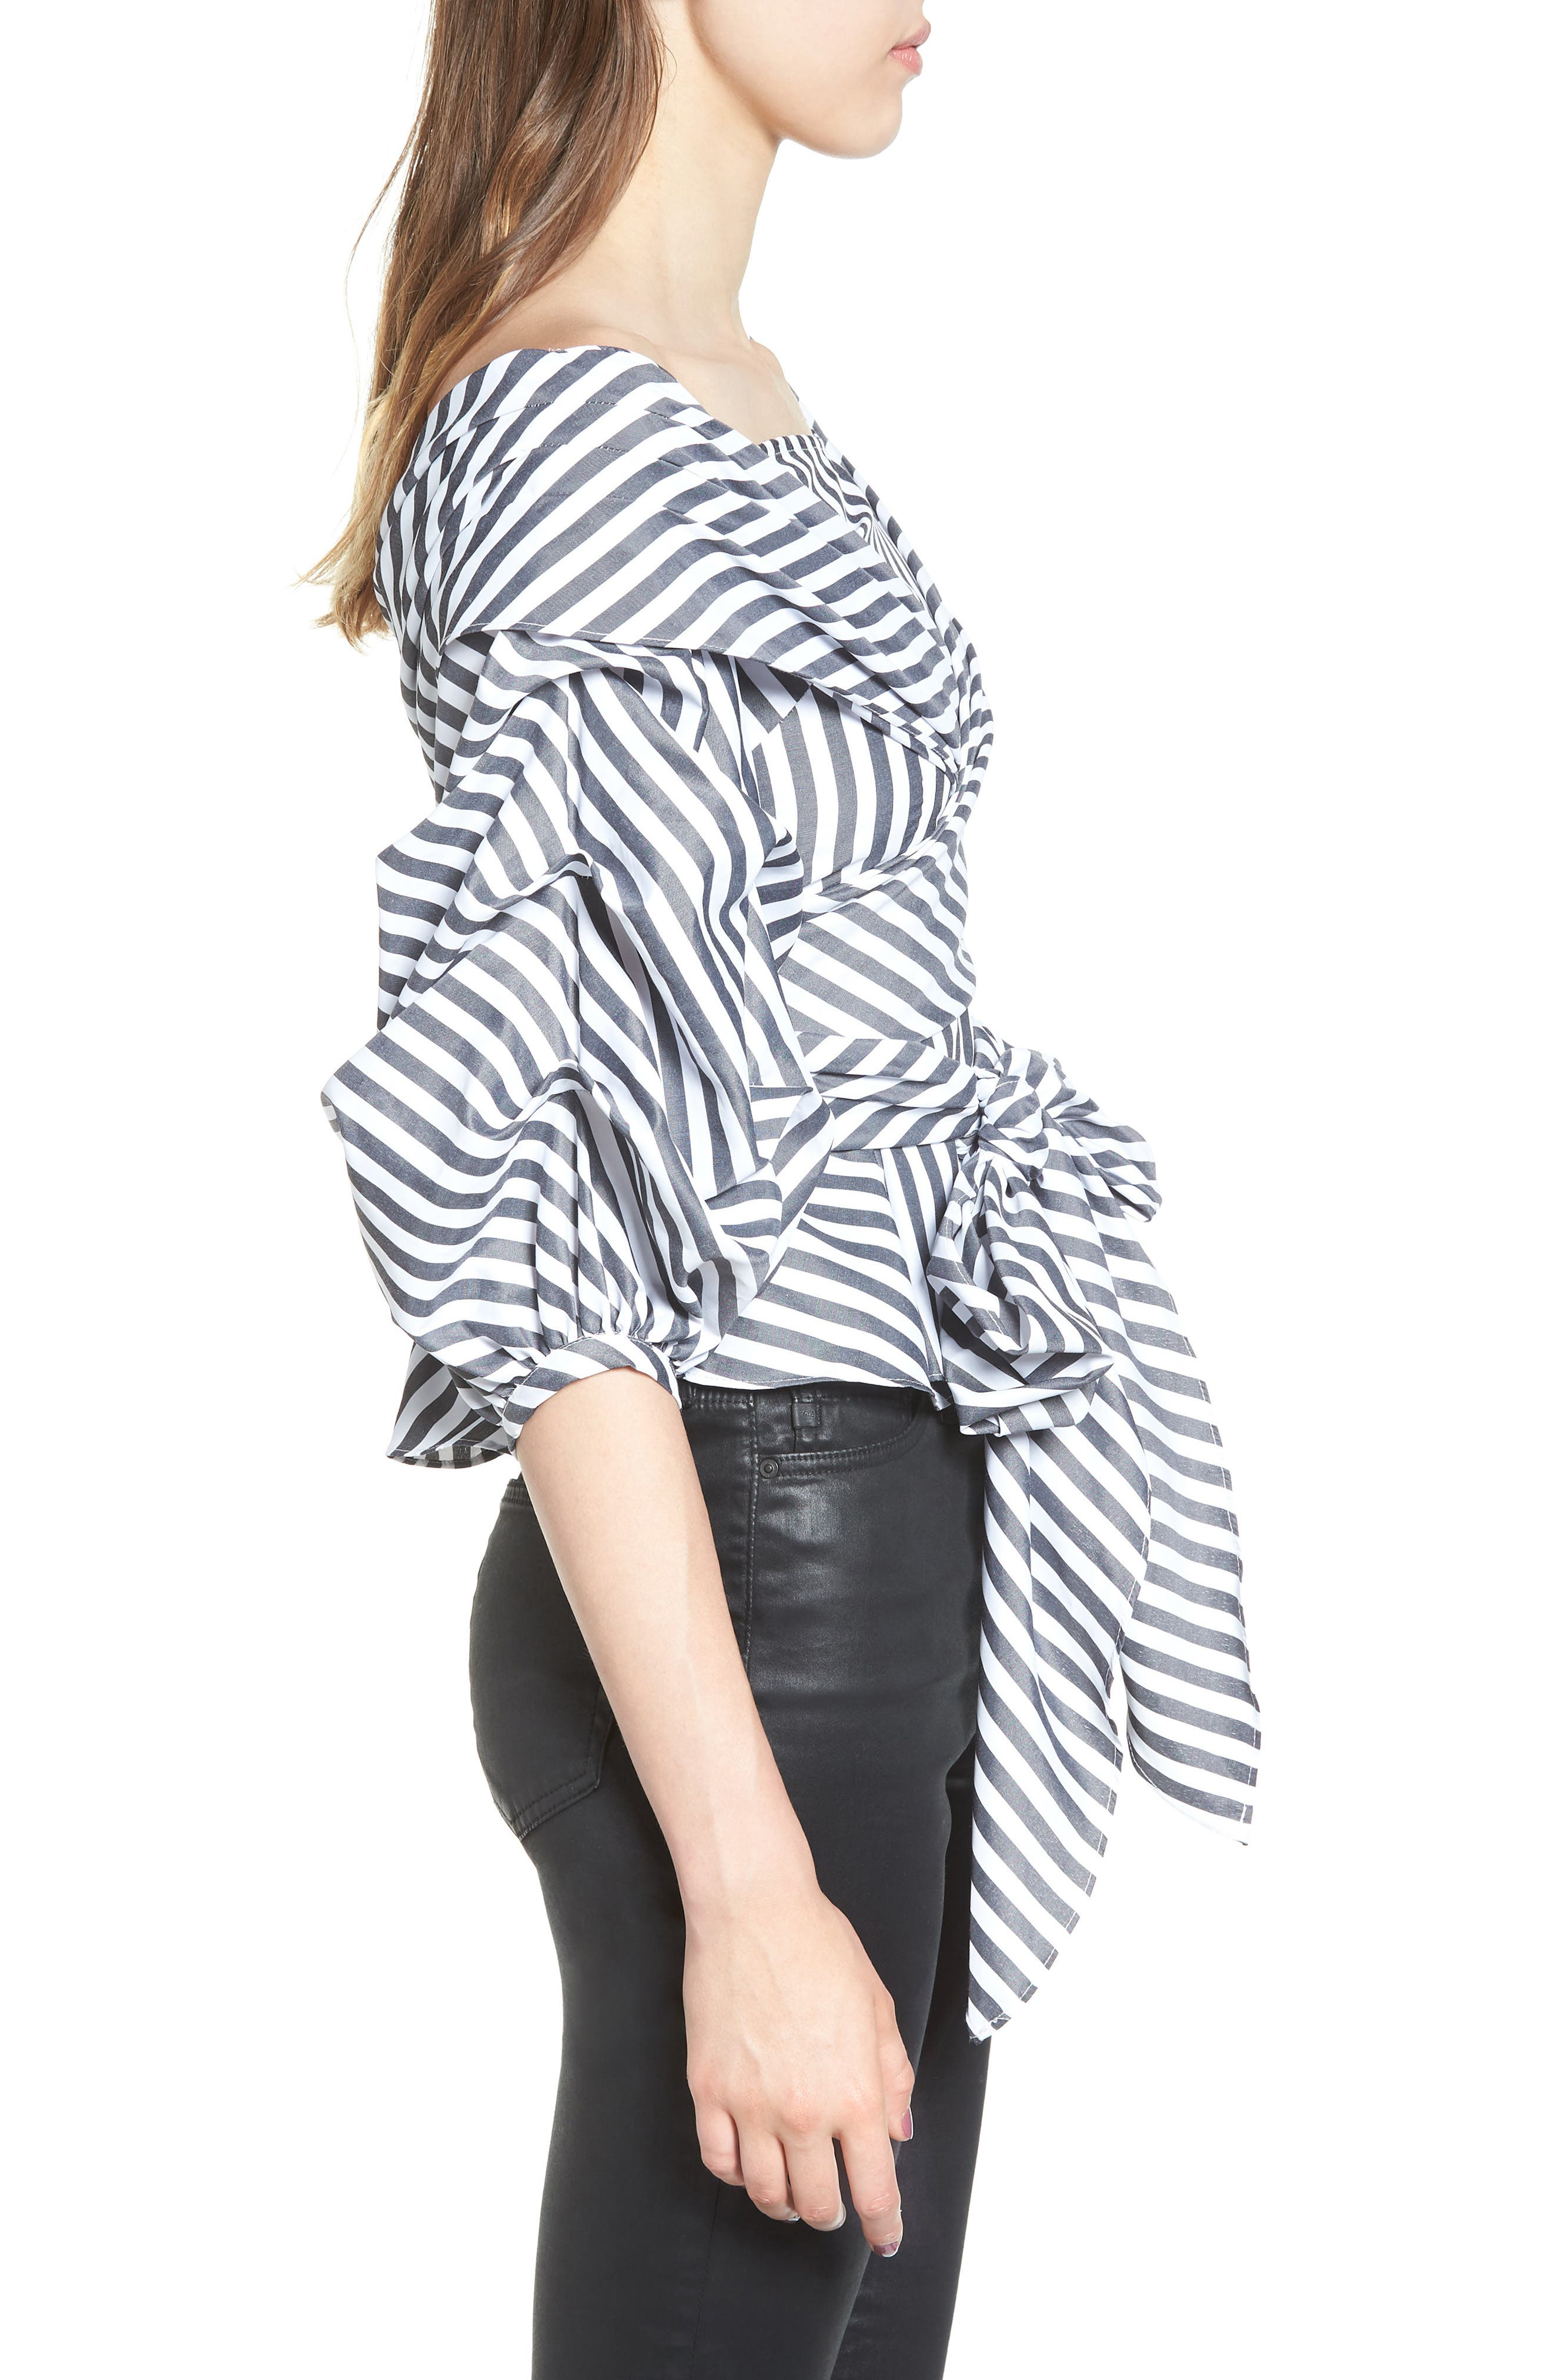 The Lovers Lane Top,                             Alternate thumbnail 3, color,                             Striped Charcoal